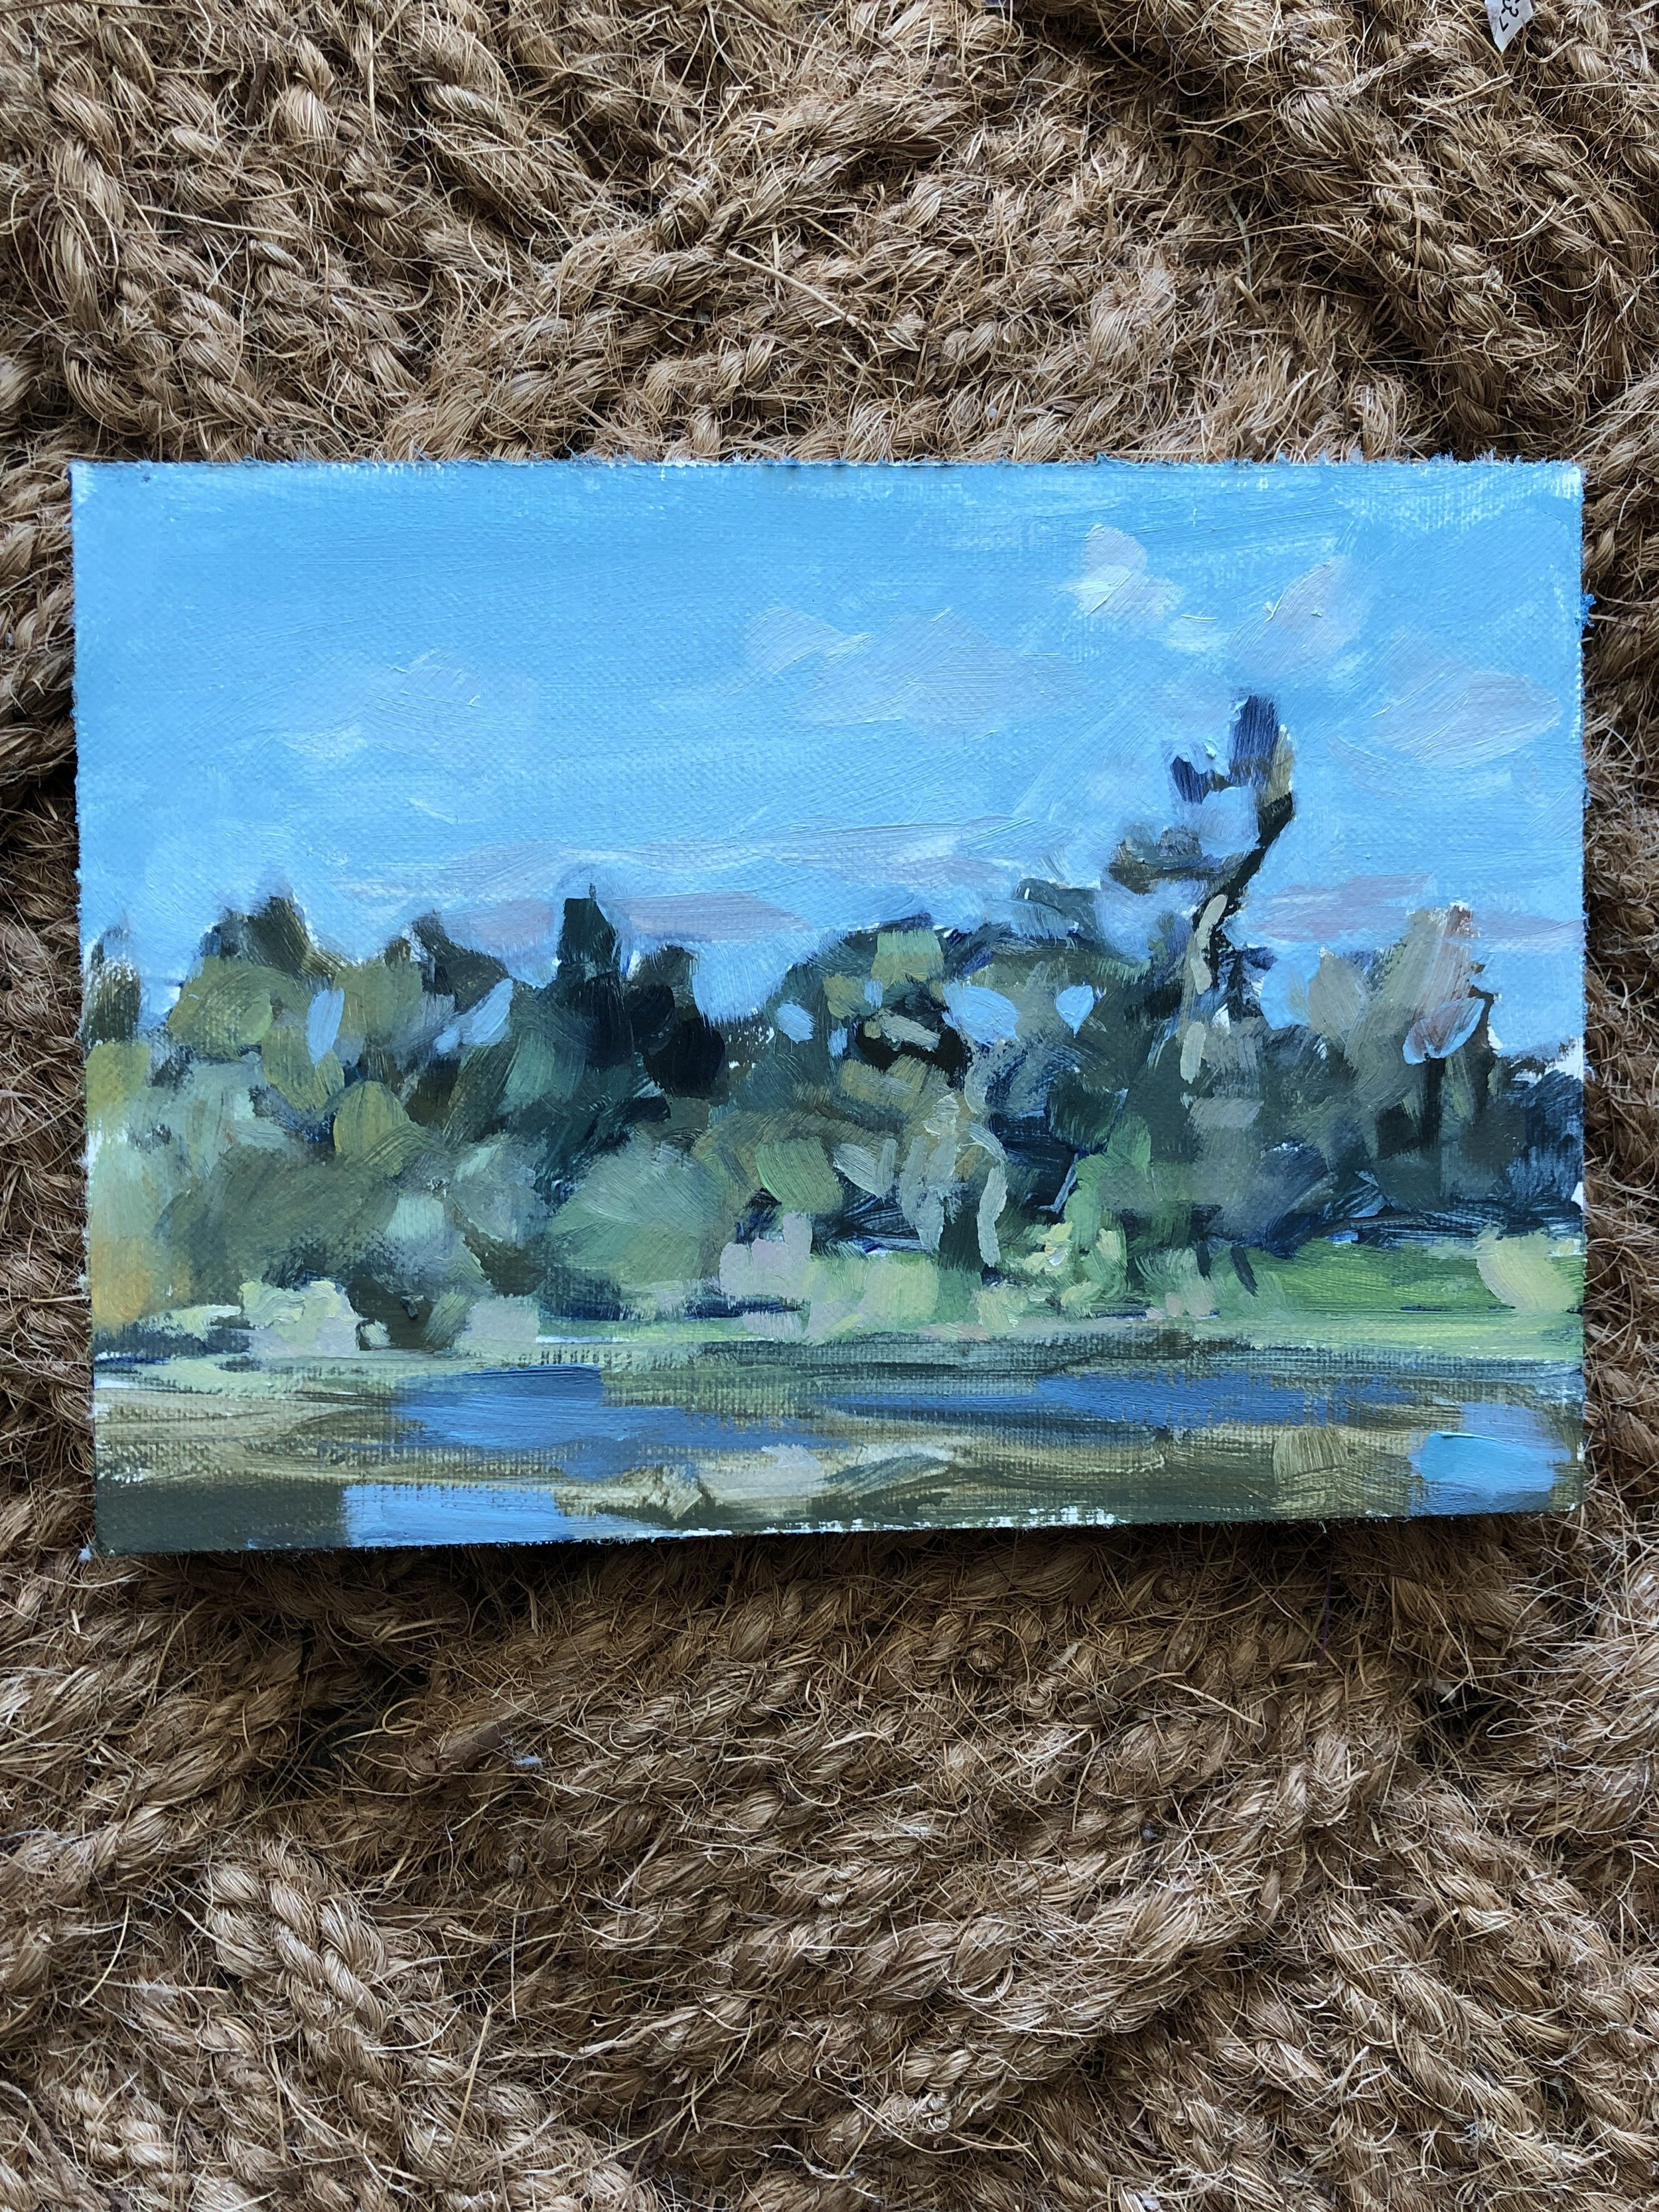 23 November 2018. Ah, finally a moment for plein air. Today is Black Friday and my In laws were in town, kayaking during this painting. before you get all impressed that we resisted the sales, know that we went shopping later that day 😉